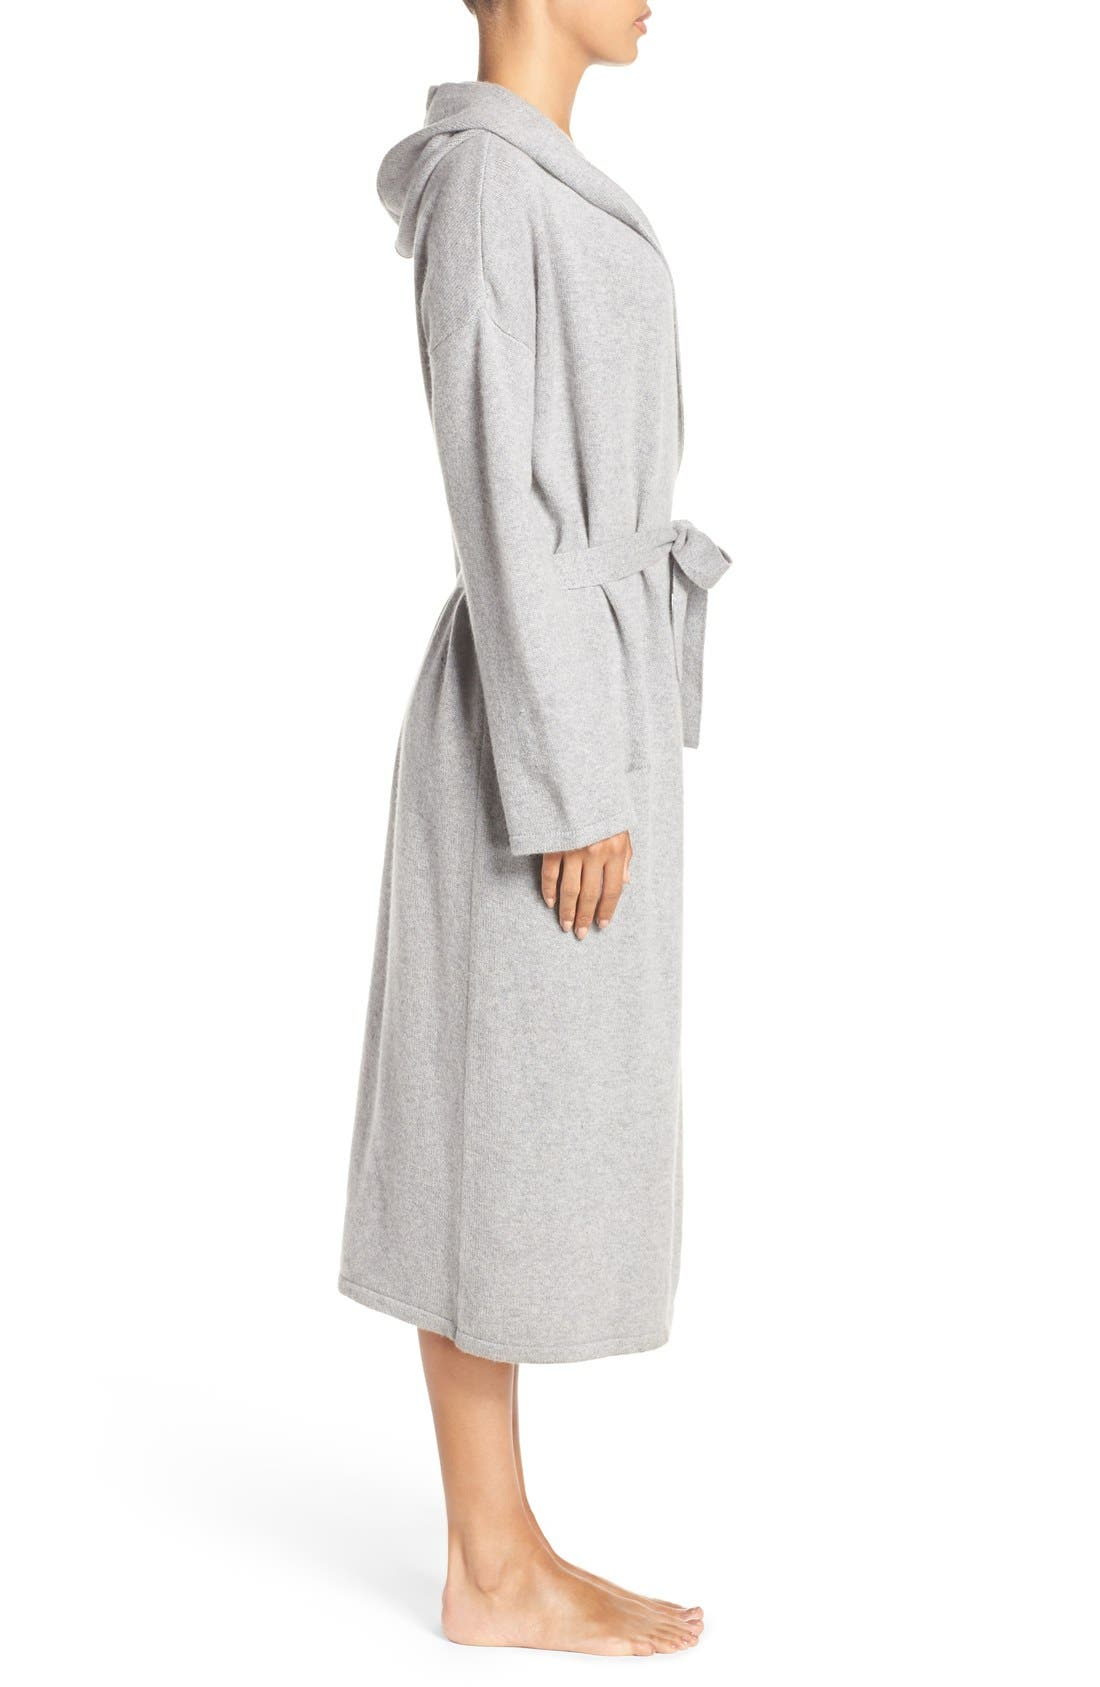 'Evie' Hooded Cashmere Robe,                             Alternate thumbnail 3, color,                             Grey Heather